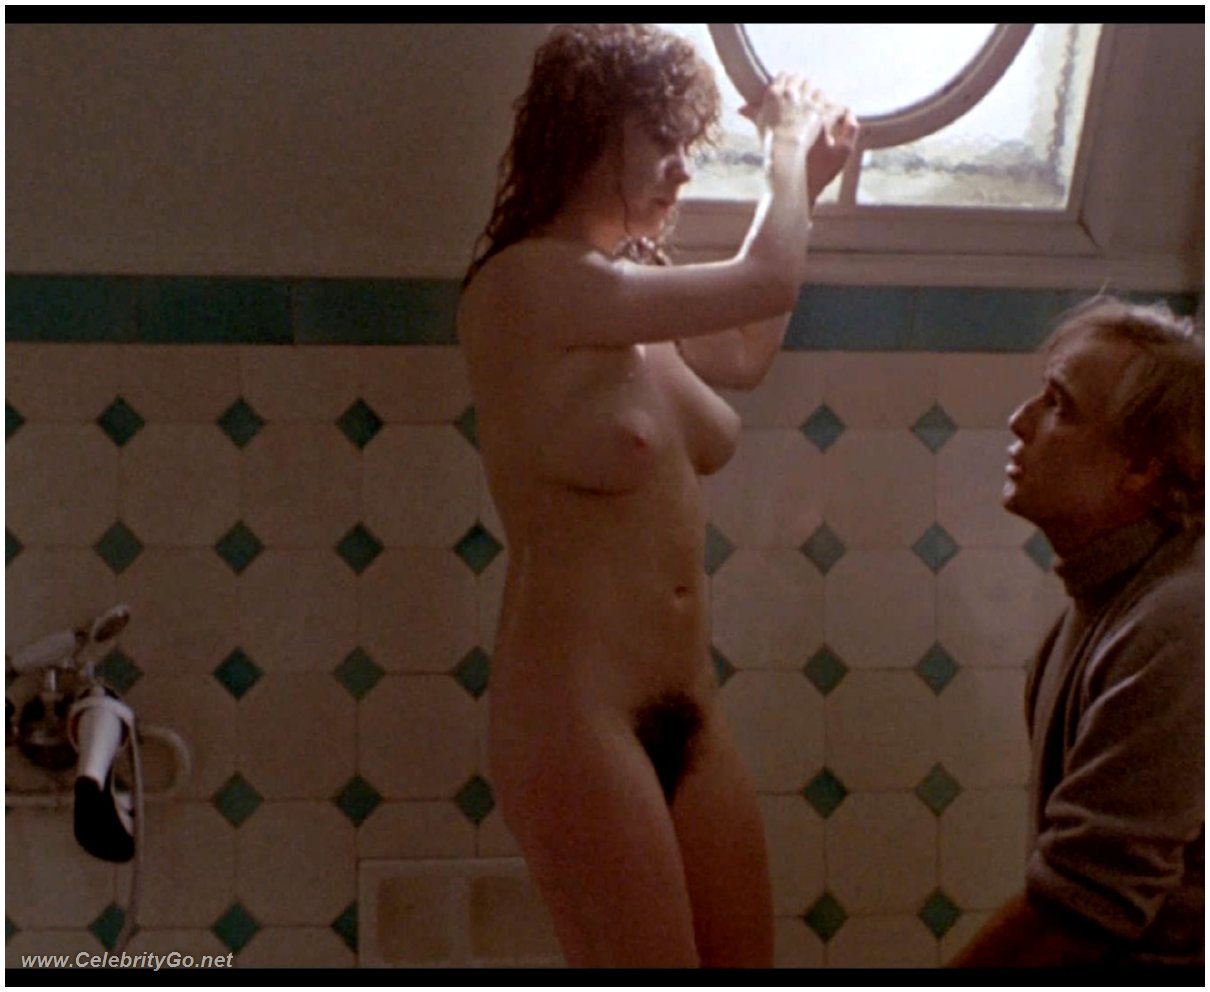 Maria schneider nude scene from last tango in paris 5